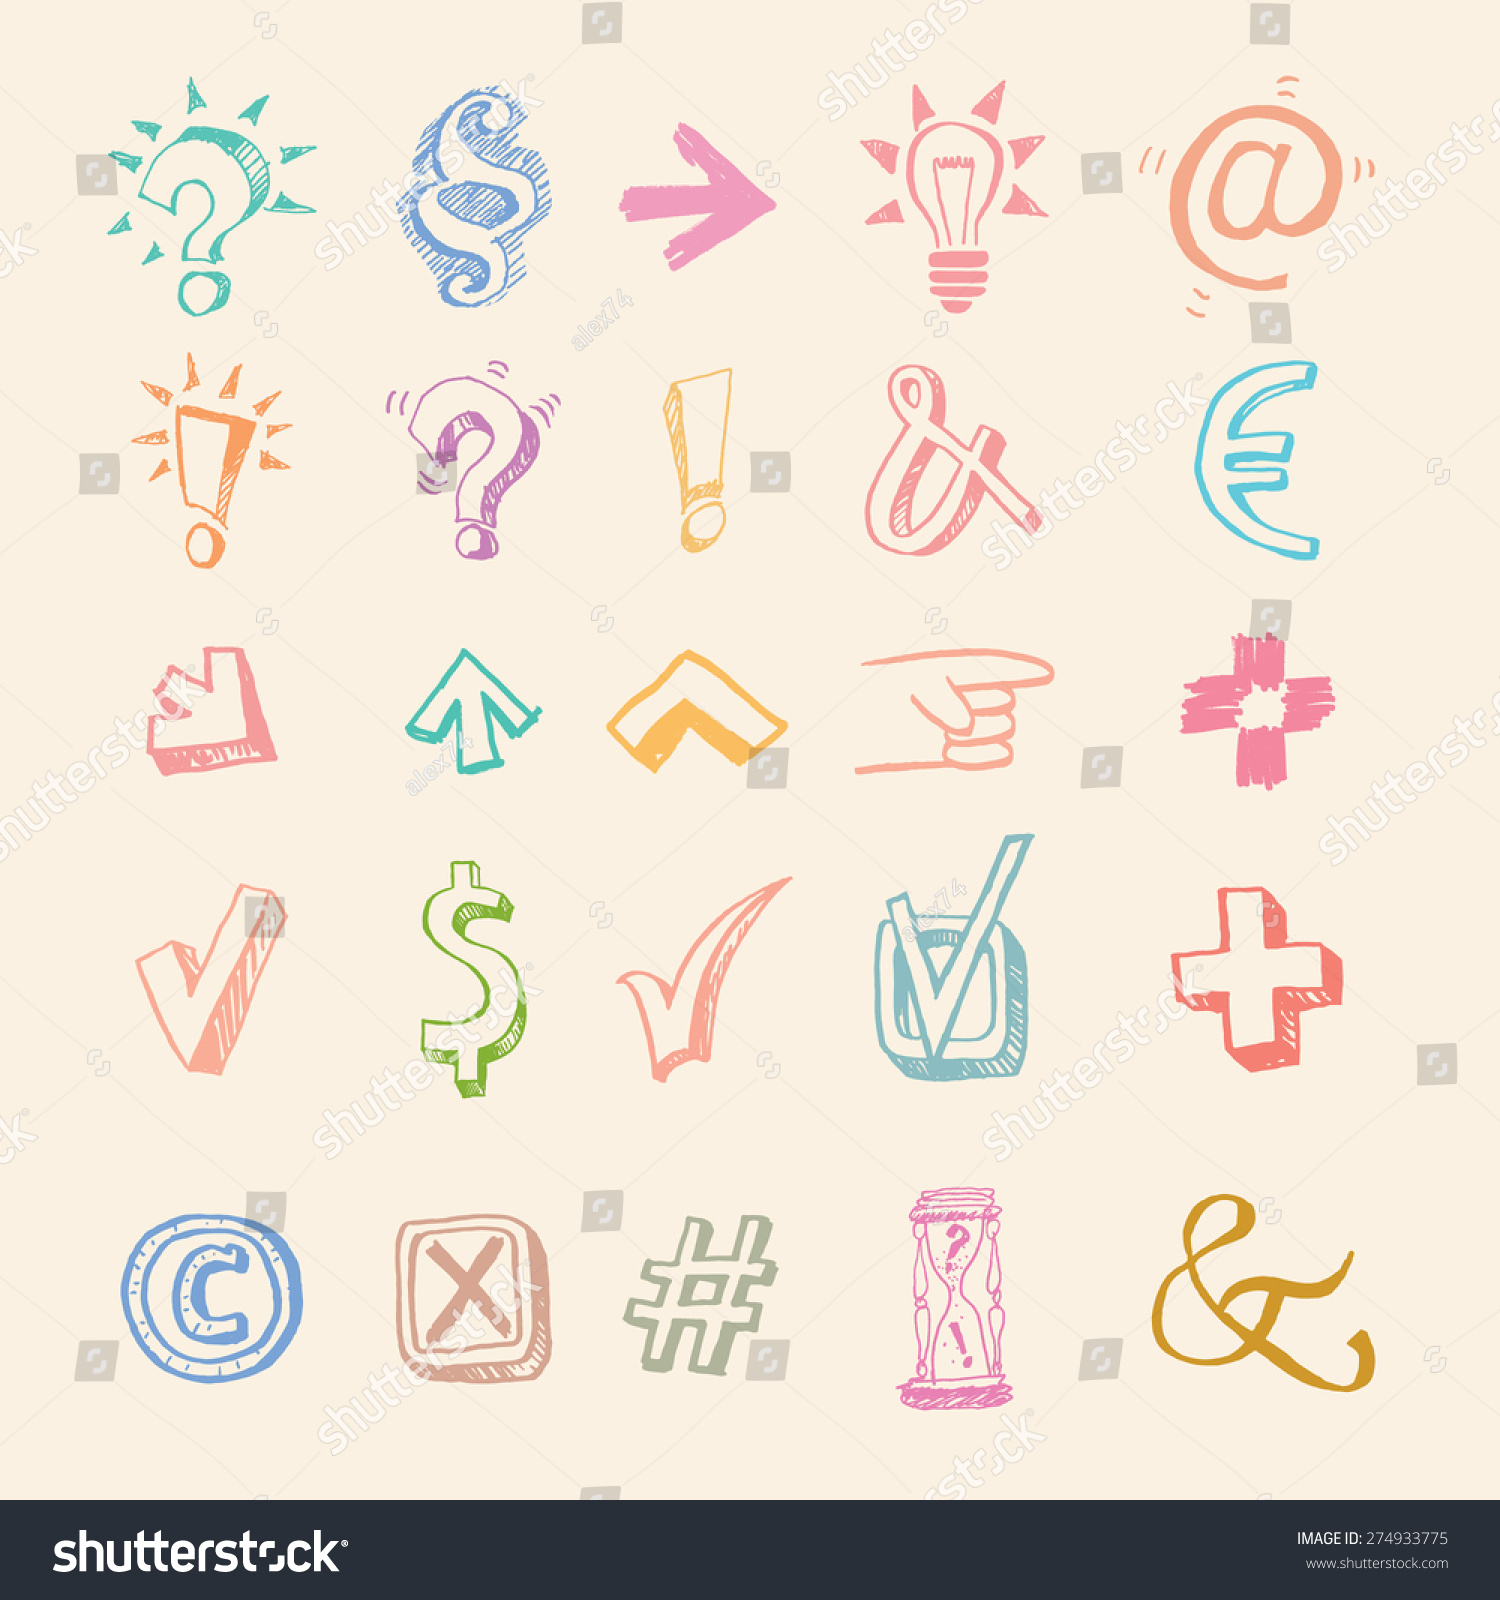 Royalty Free Symbols Collection Big Vector Set 274933775 Stock